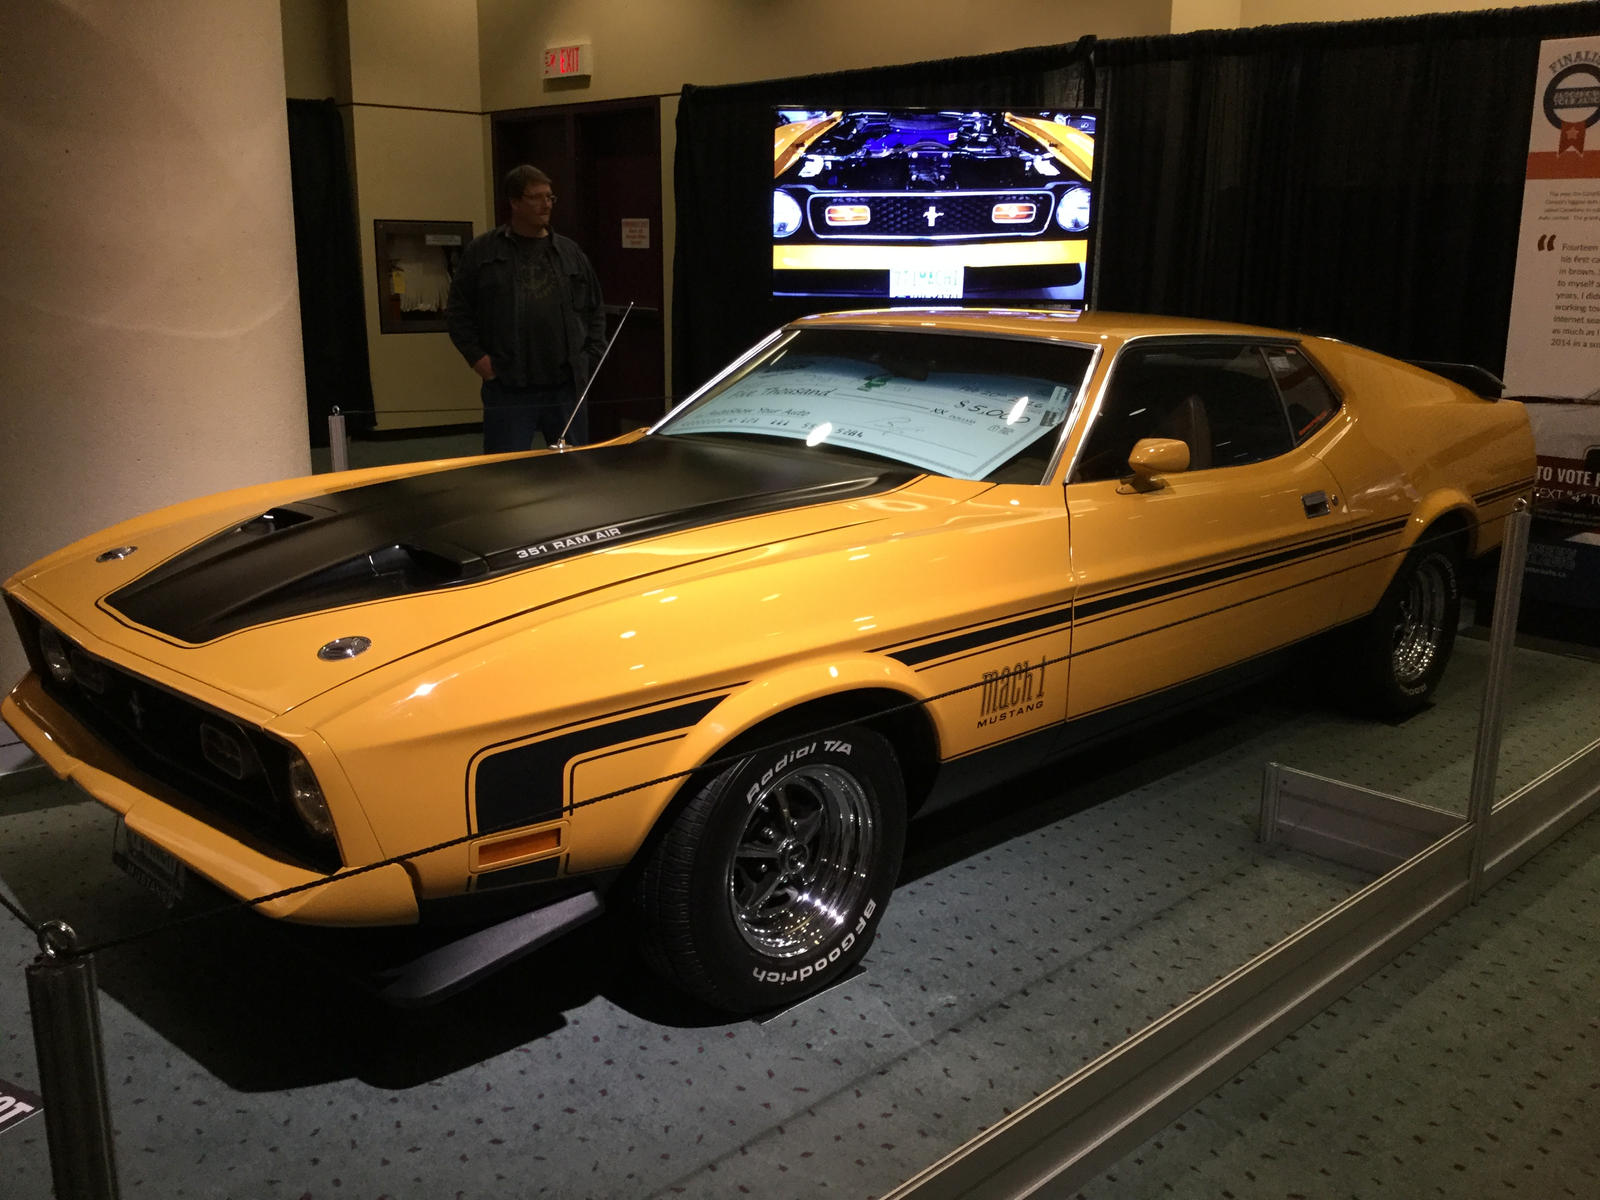 2016 Auto Show Ford Mustang Mach 1 by CyberneticAlex on DeviantArt